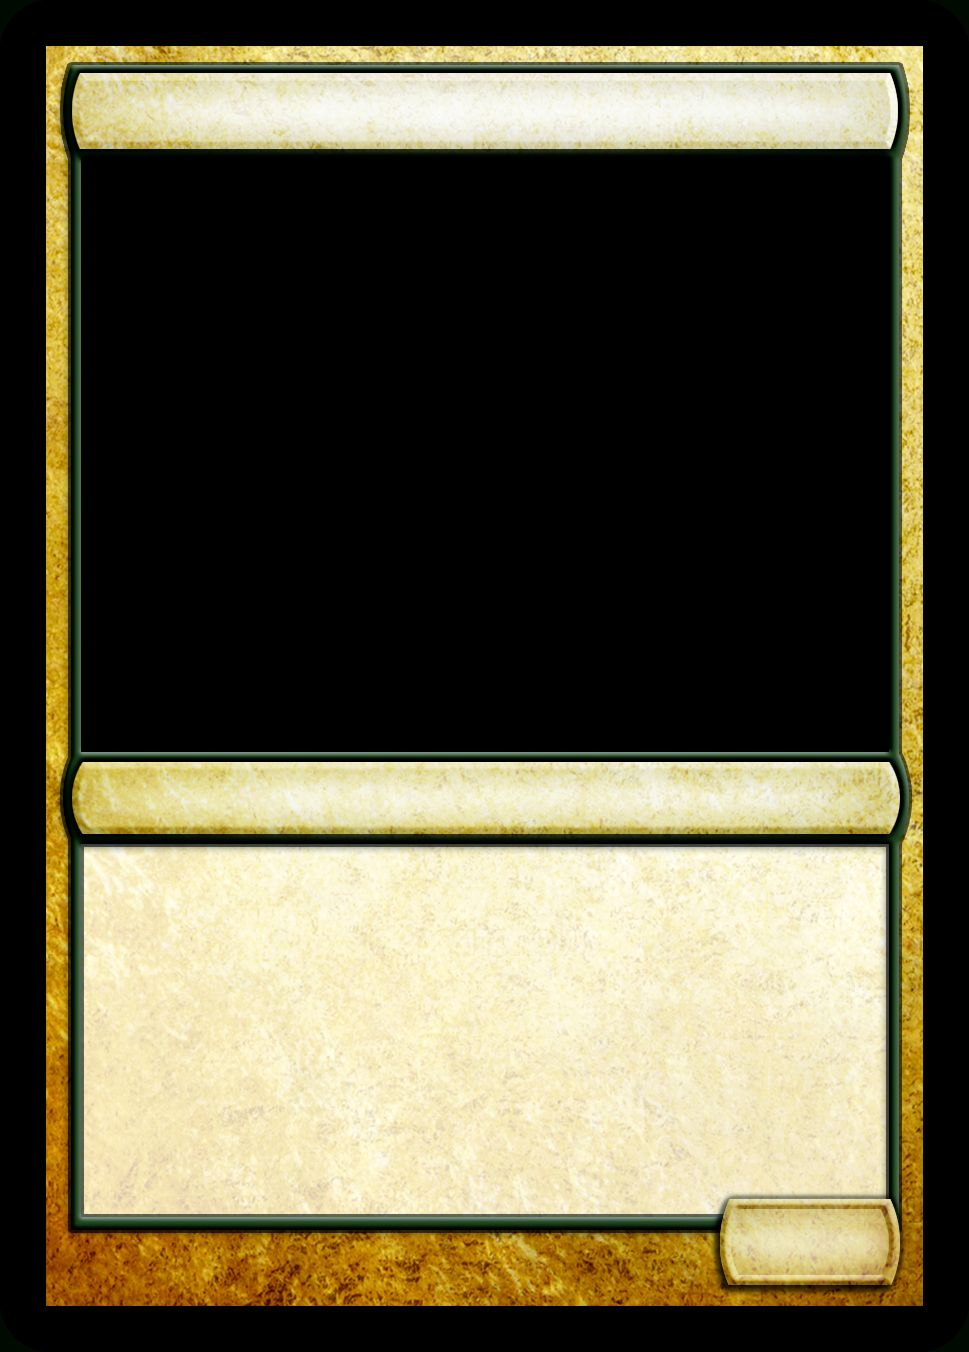 Mtg Multicolor Creature Template Mtg Templates Id Card Within Mtg Card Printing Templat Trading Card Template Magic The Gathering Cards Magic The Gathering